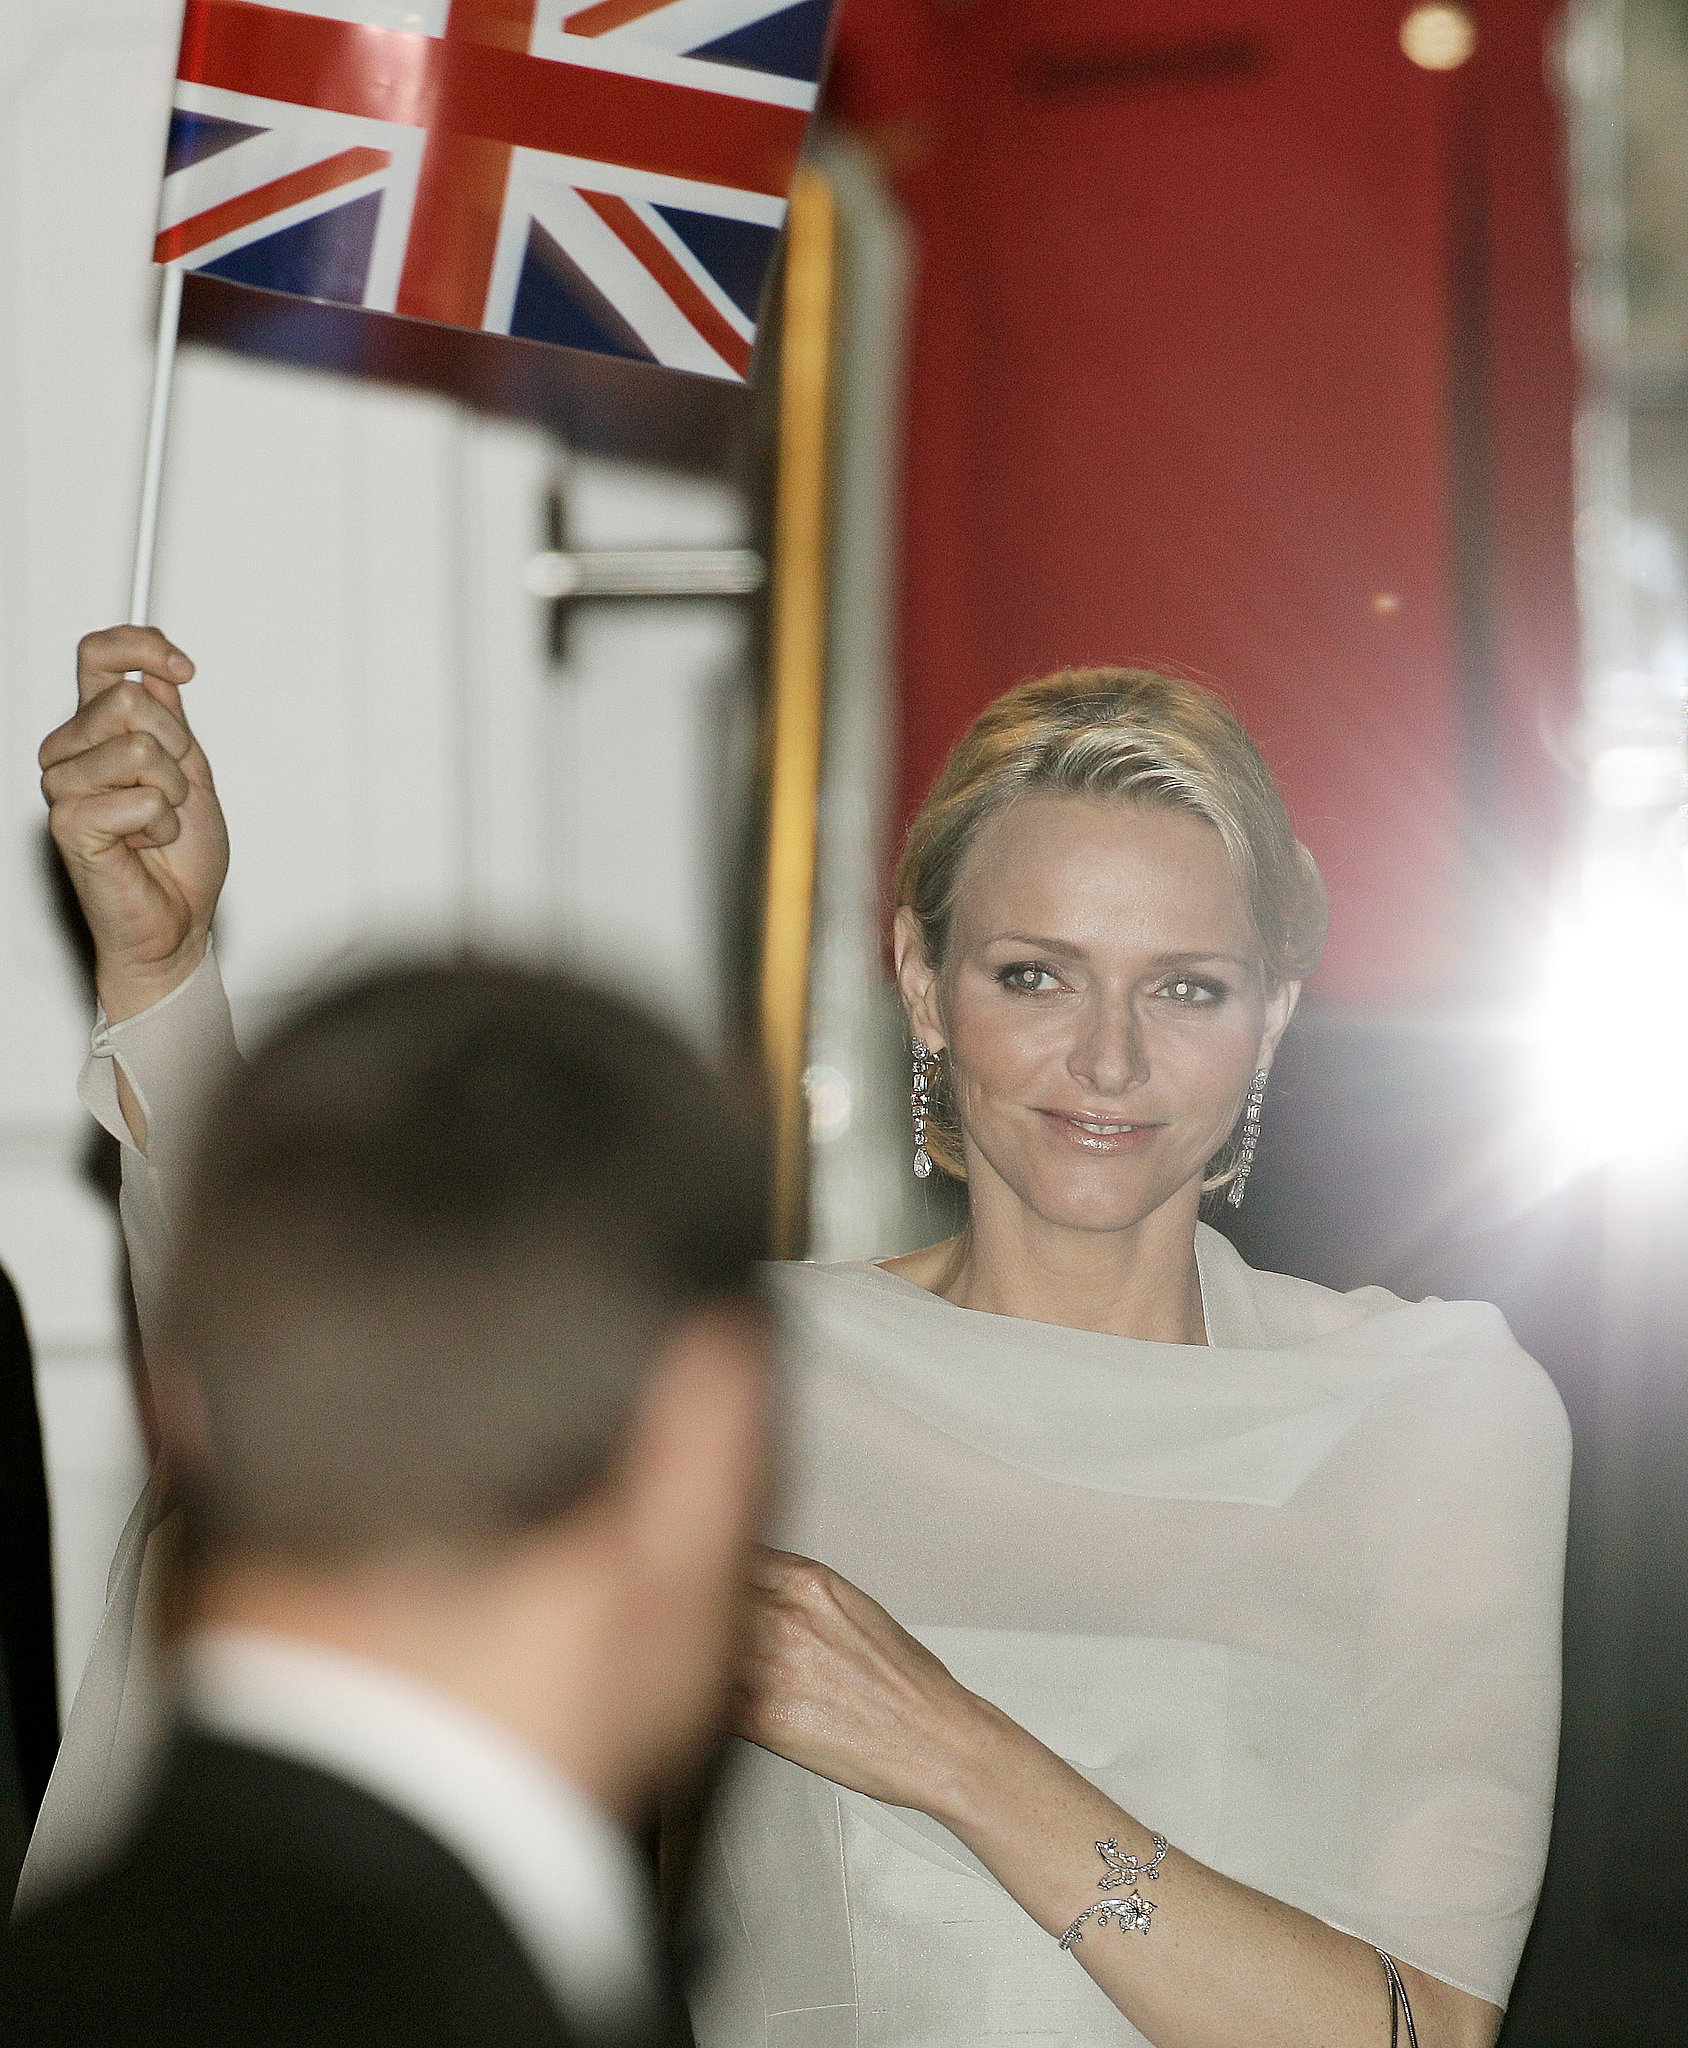 She held up a flag as she left a prewedding gala ahead of Prince William and Kate Middleton's wedding.  Source: Getty / Matthew Lloyd